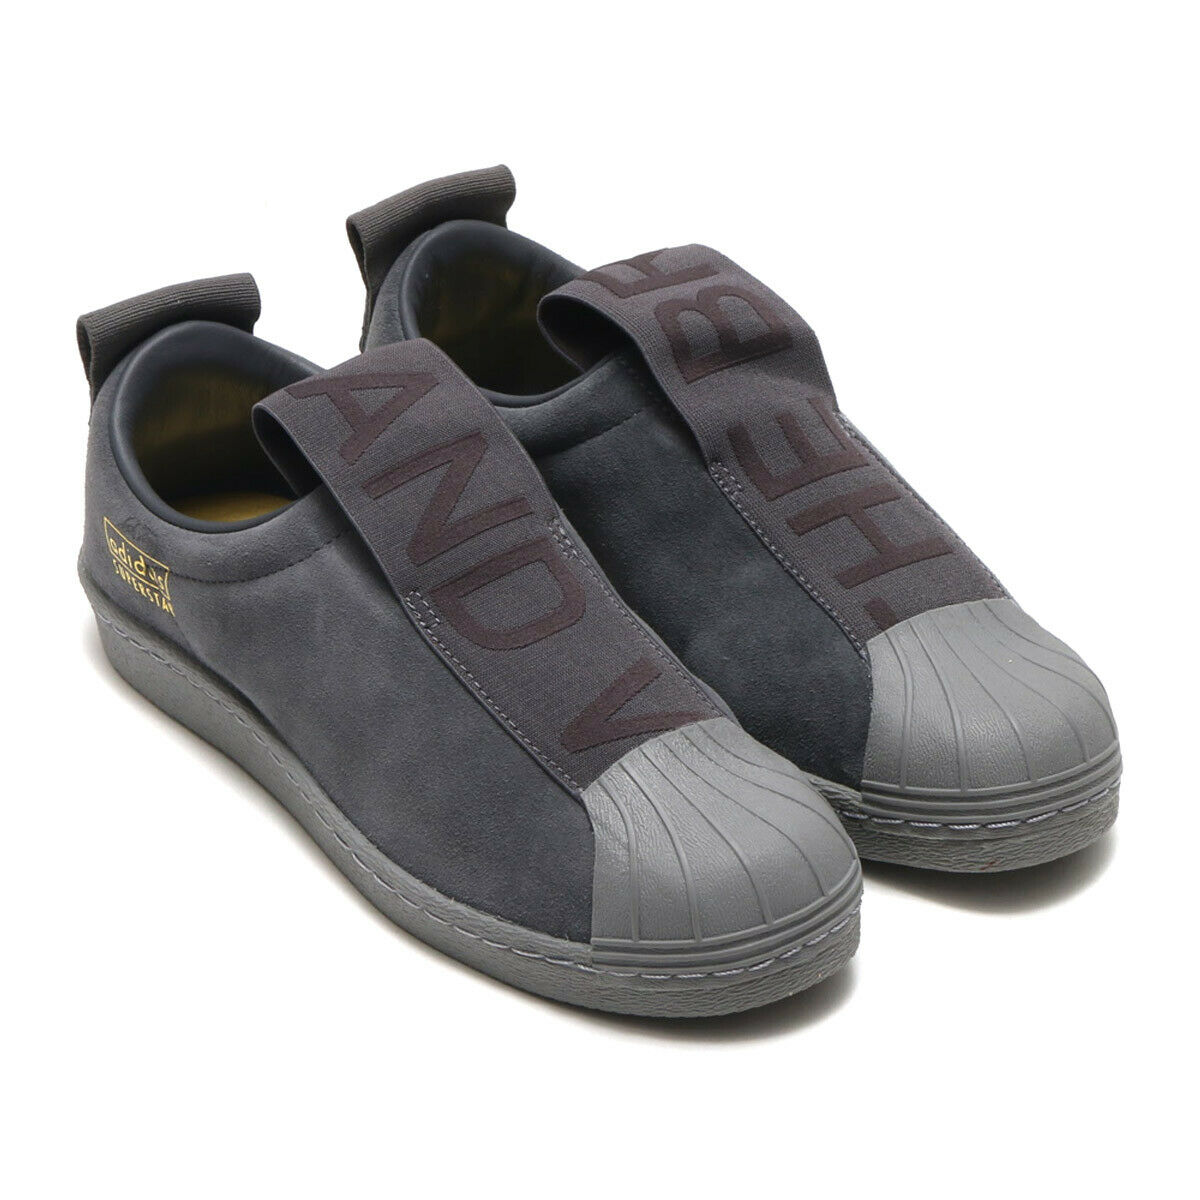 Neu Adidas Original damen Superstar BW3S Slip On CG3695 Grau Turnschuhe Gr 39 1 3